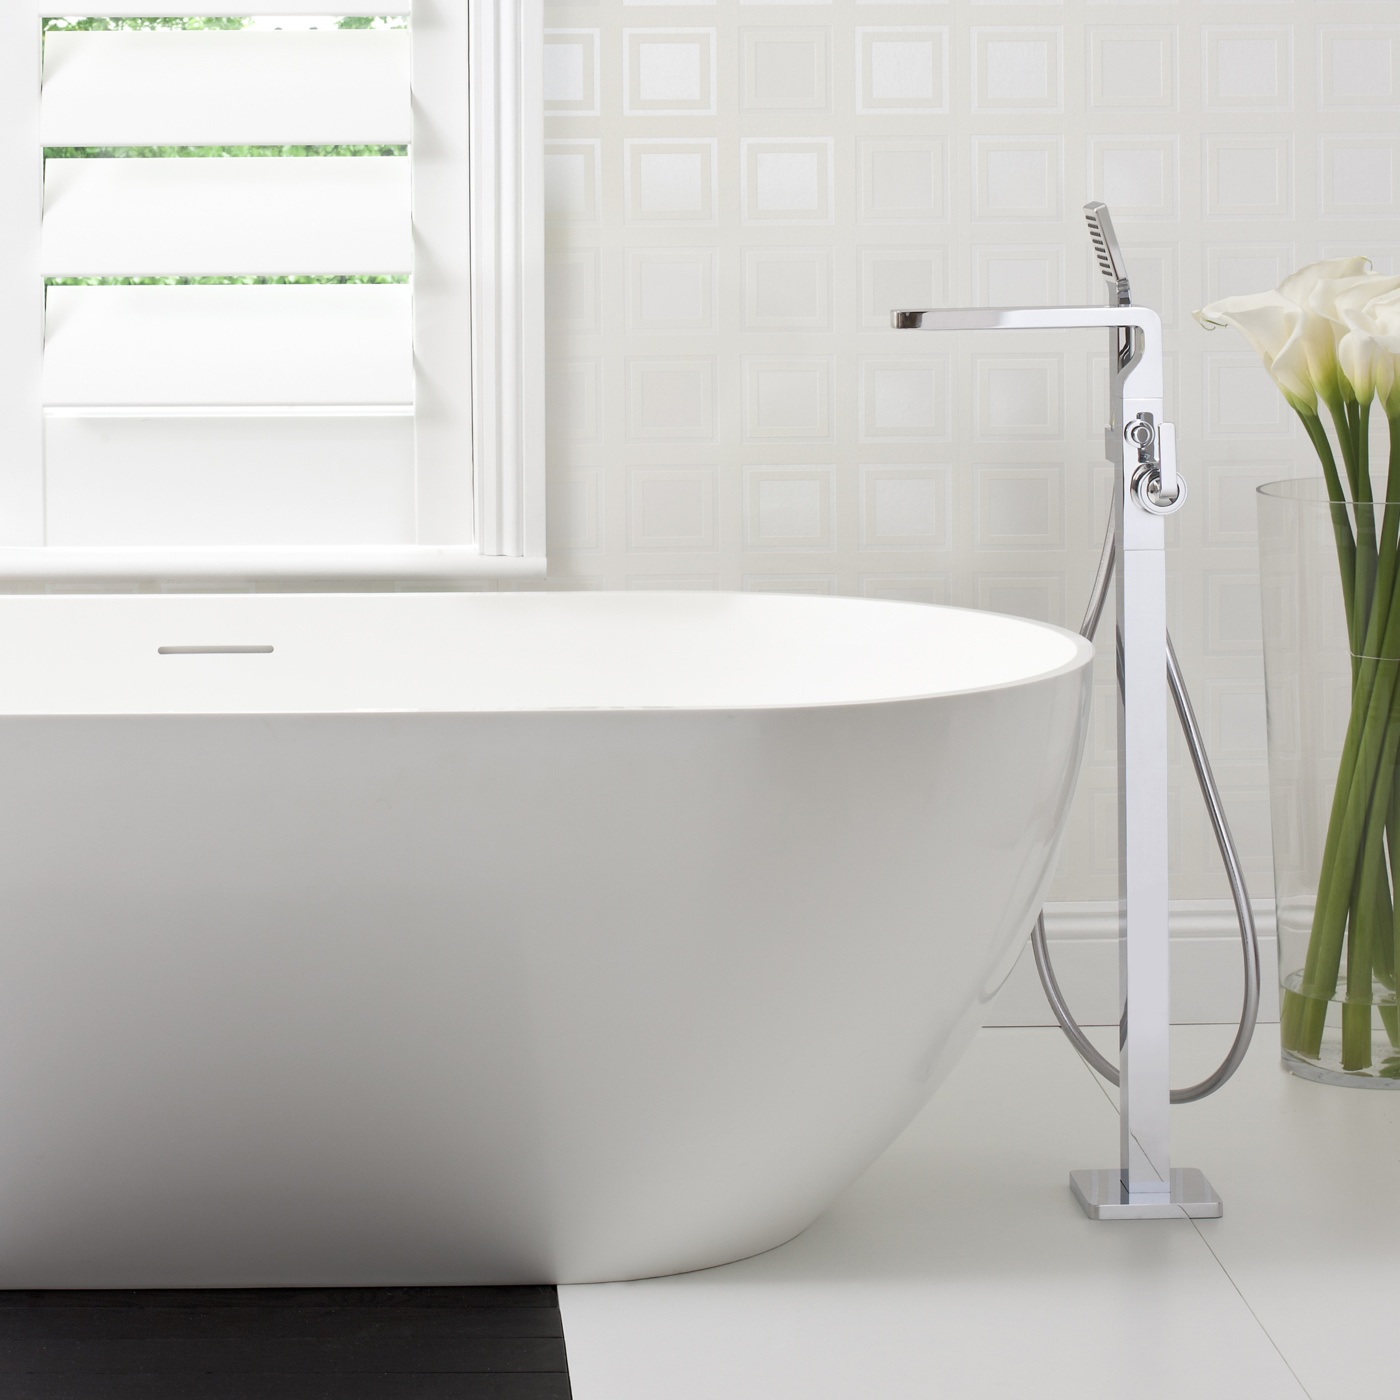 for hers bathroom tub ideas design discount blog his a and